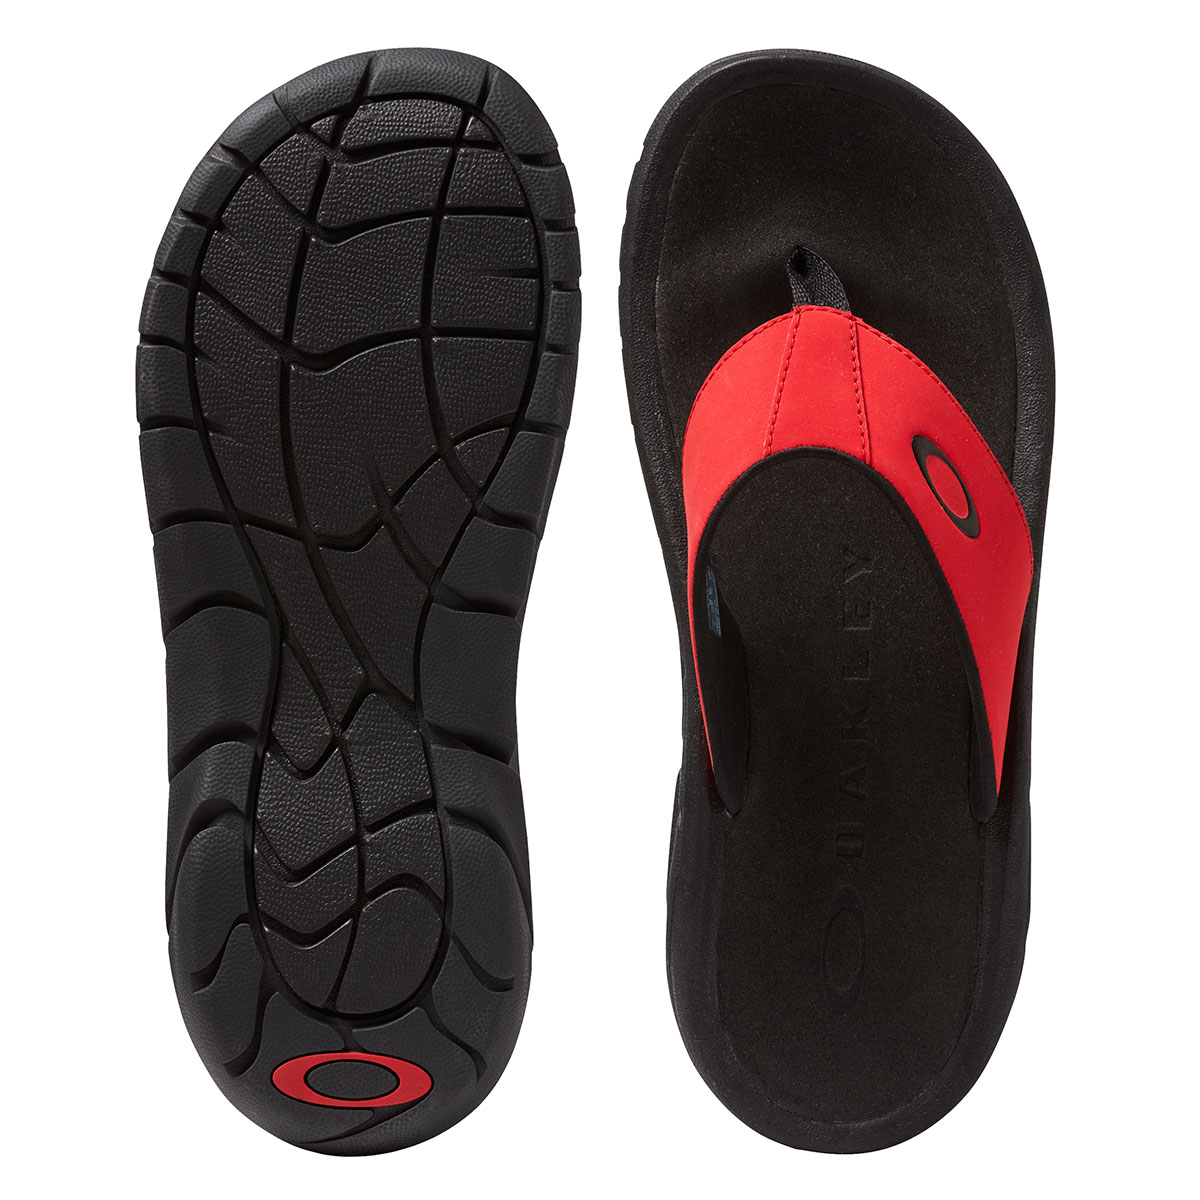 68a67df6e7 Oakley SuperCoil 2.0 Sandals Red 10 for sale online